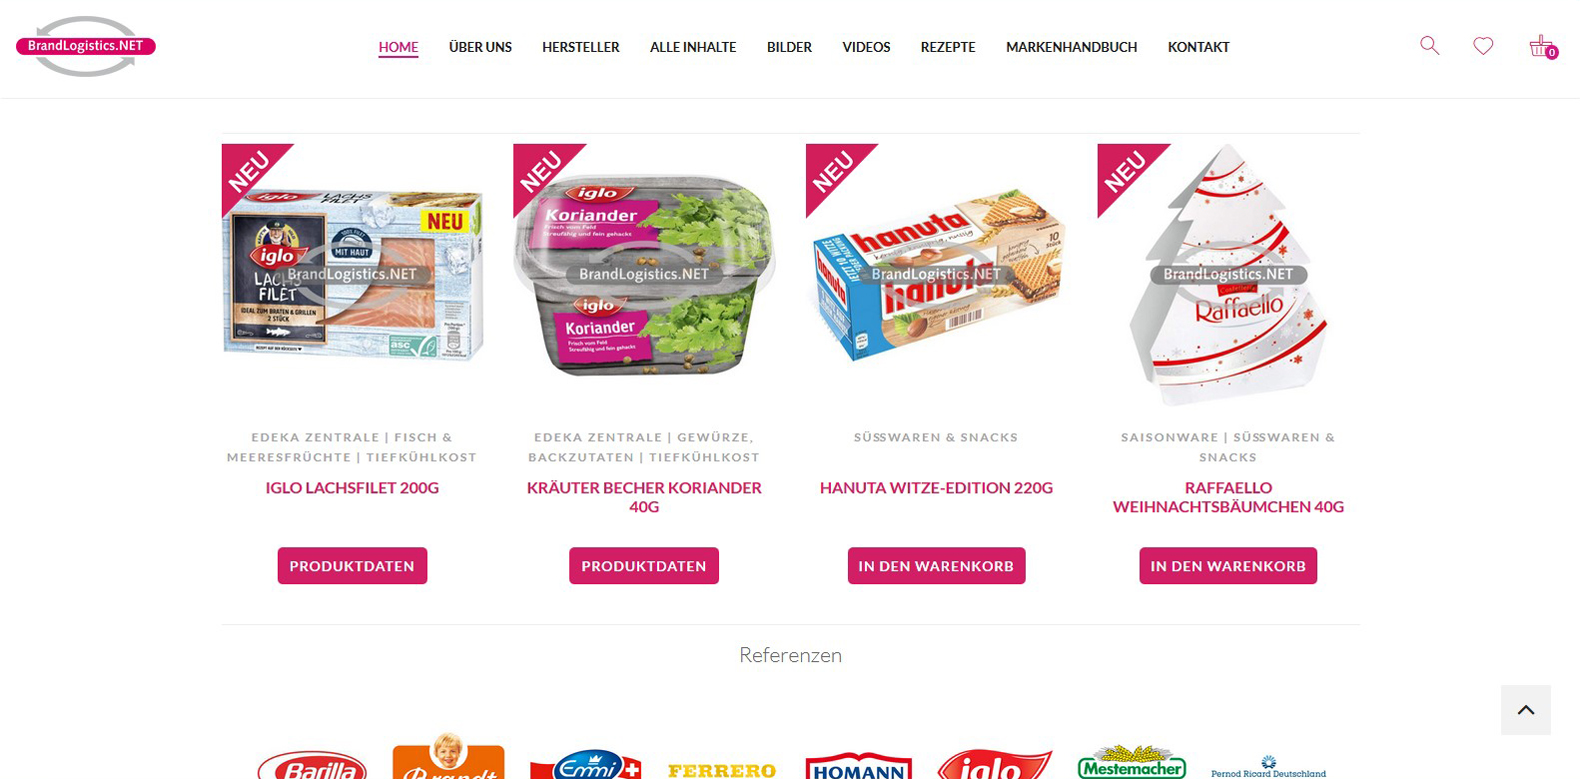 WPITCOM Digital Media Portal Alimentos